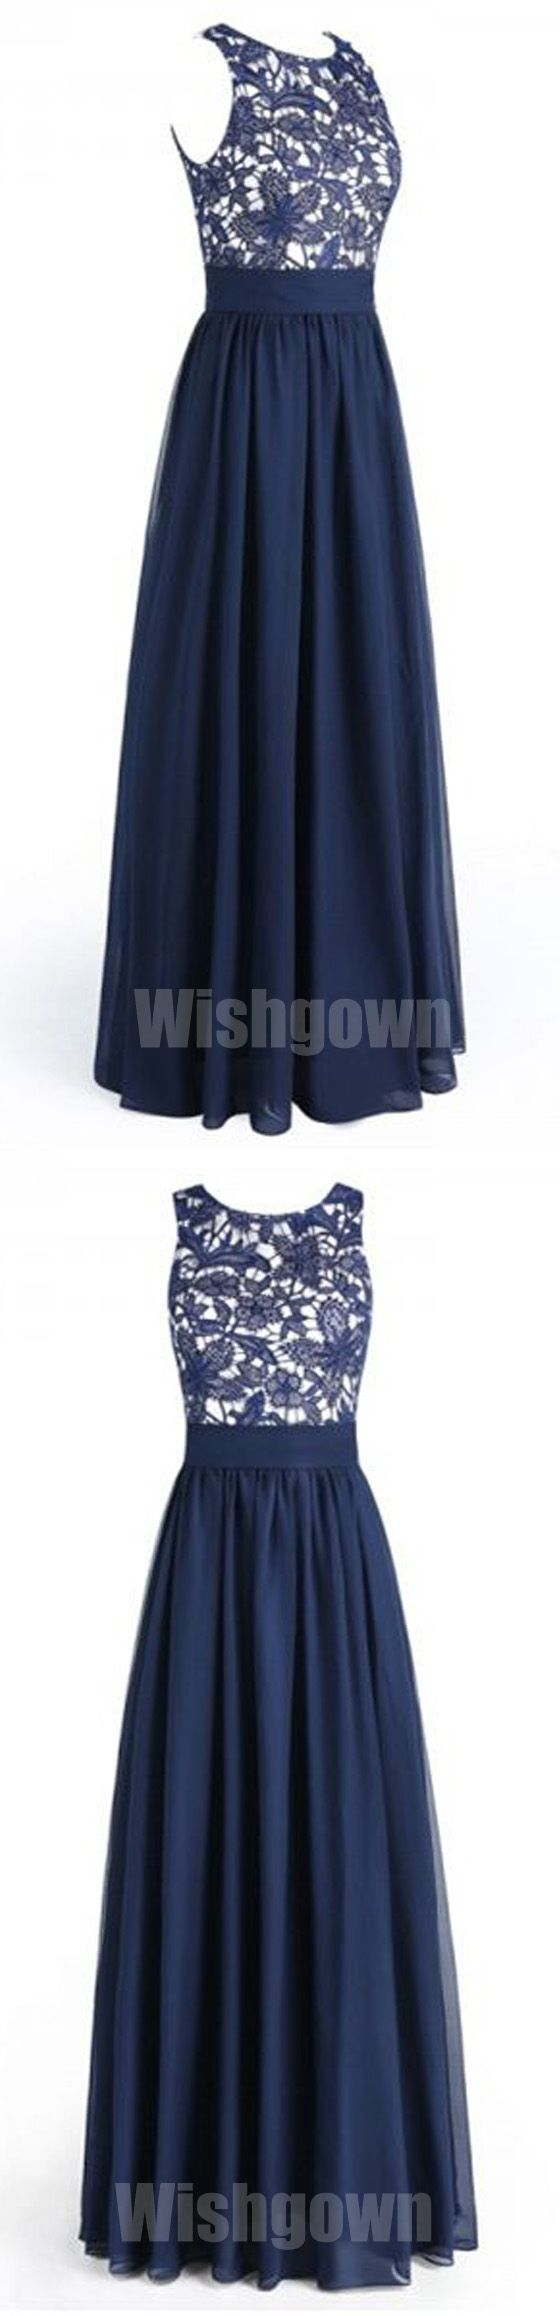 Navy Blue Lace Top Chiffon Elegant Cheap Floor Length Wedding Bridesmaid Dresses, WG455 #bridesmaids #weddingpartydress